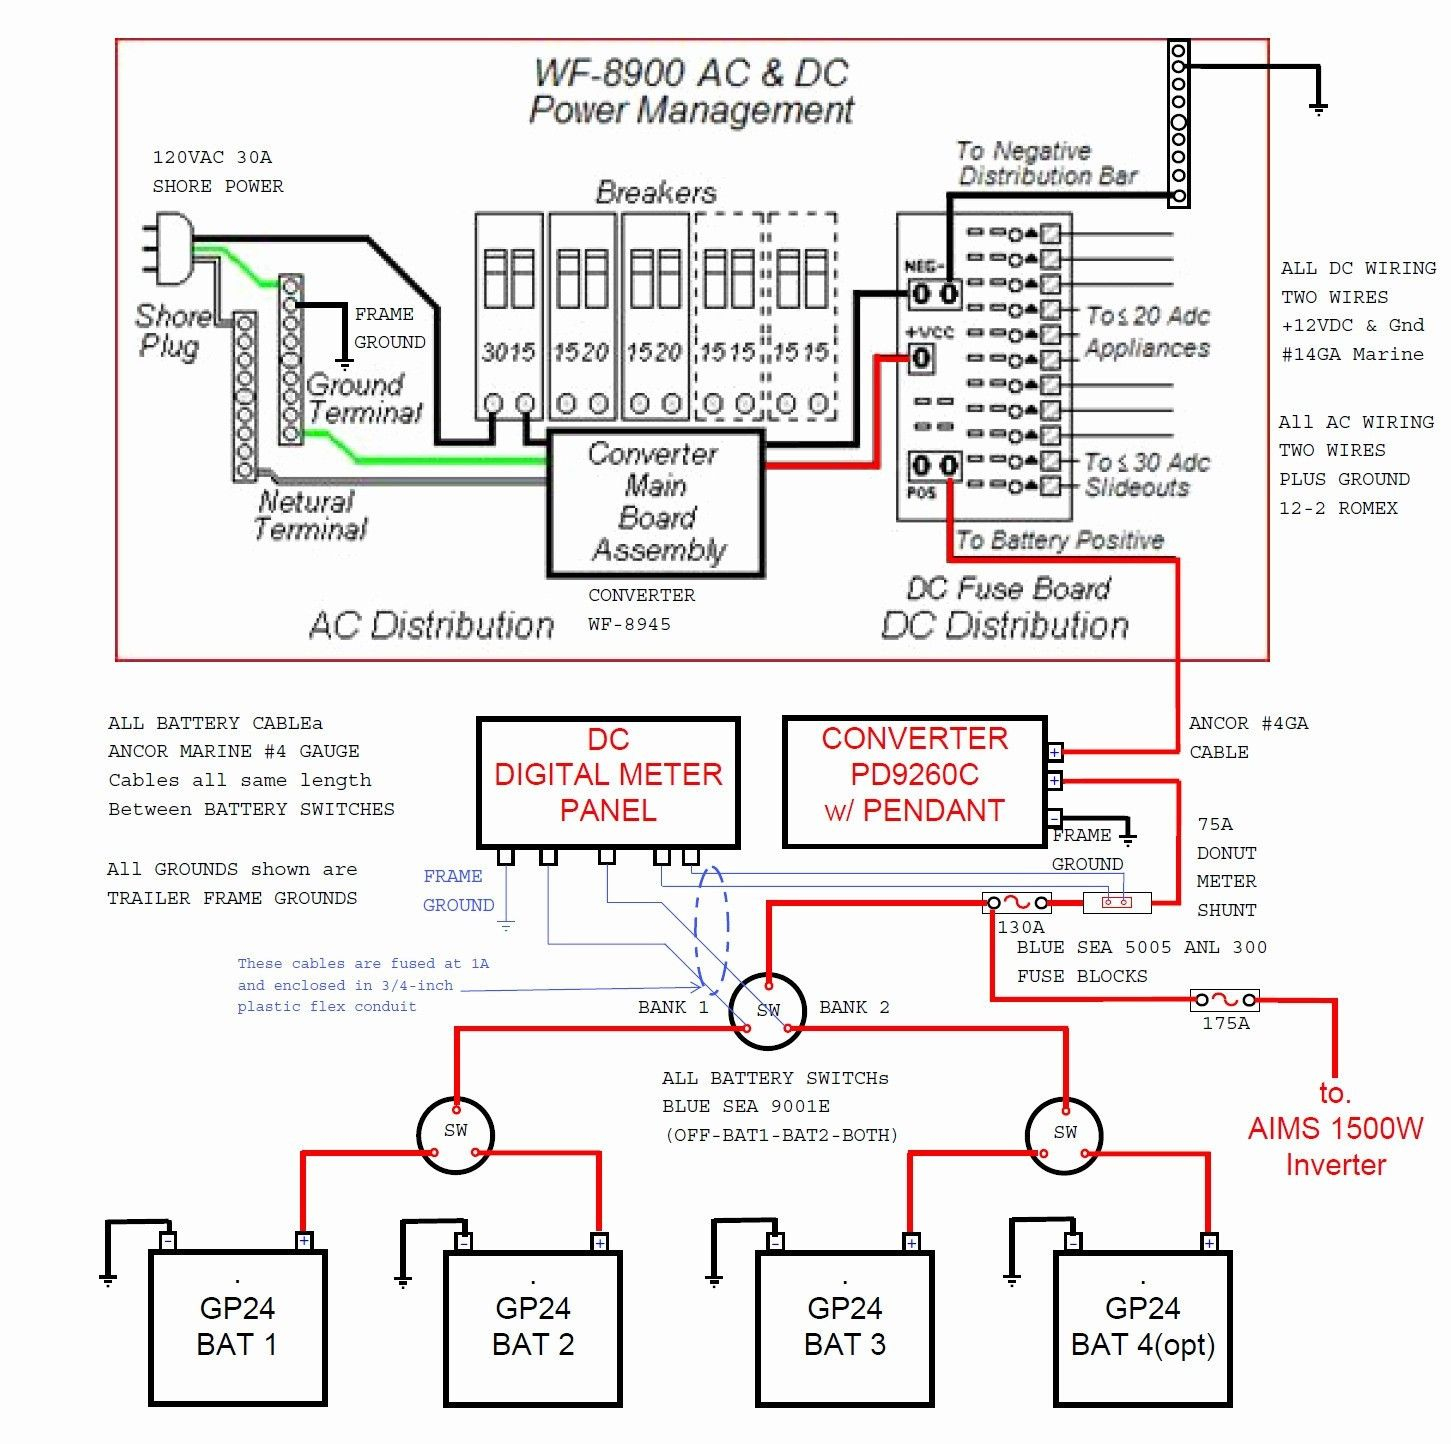 Rv Pedestal Wiring Diagram from 2020cadillac.com